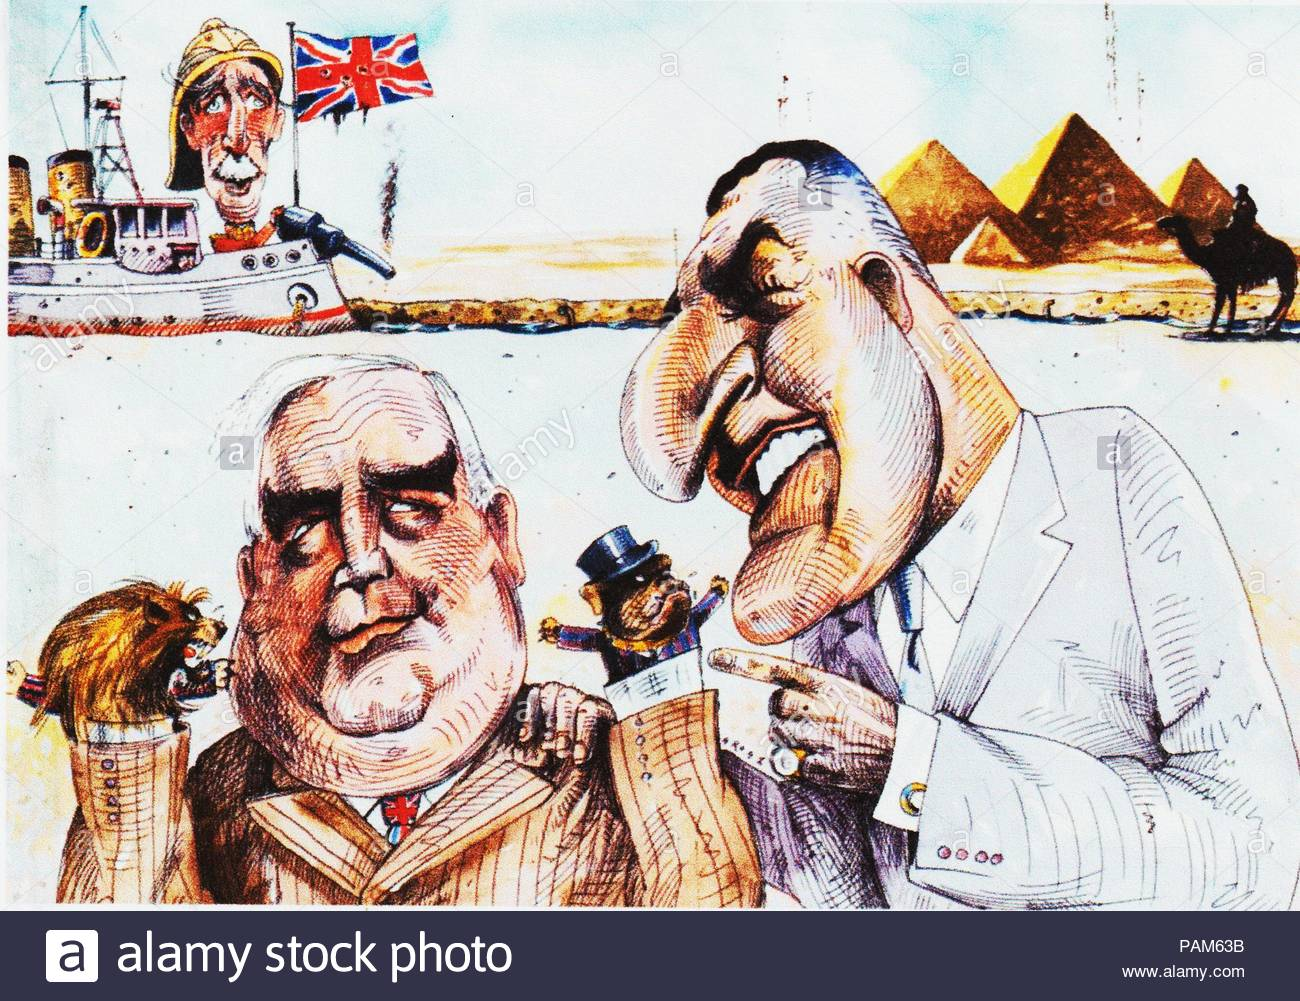 Political cartoon in which British Prime Minister Robert Menzies and Egyptian President Gamal Nasser debate over the future freedom of the Suez Canal in 1956. Cartoonist unknown. - Stock Image